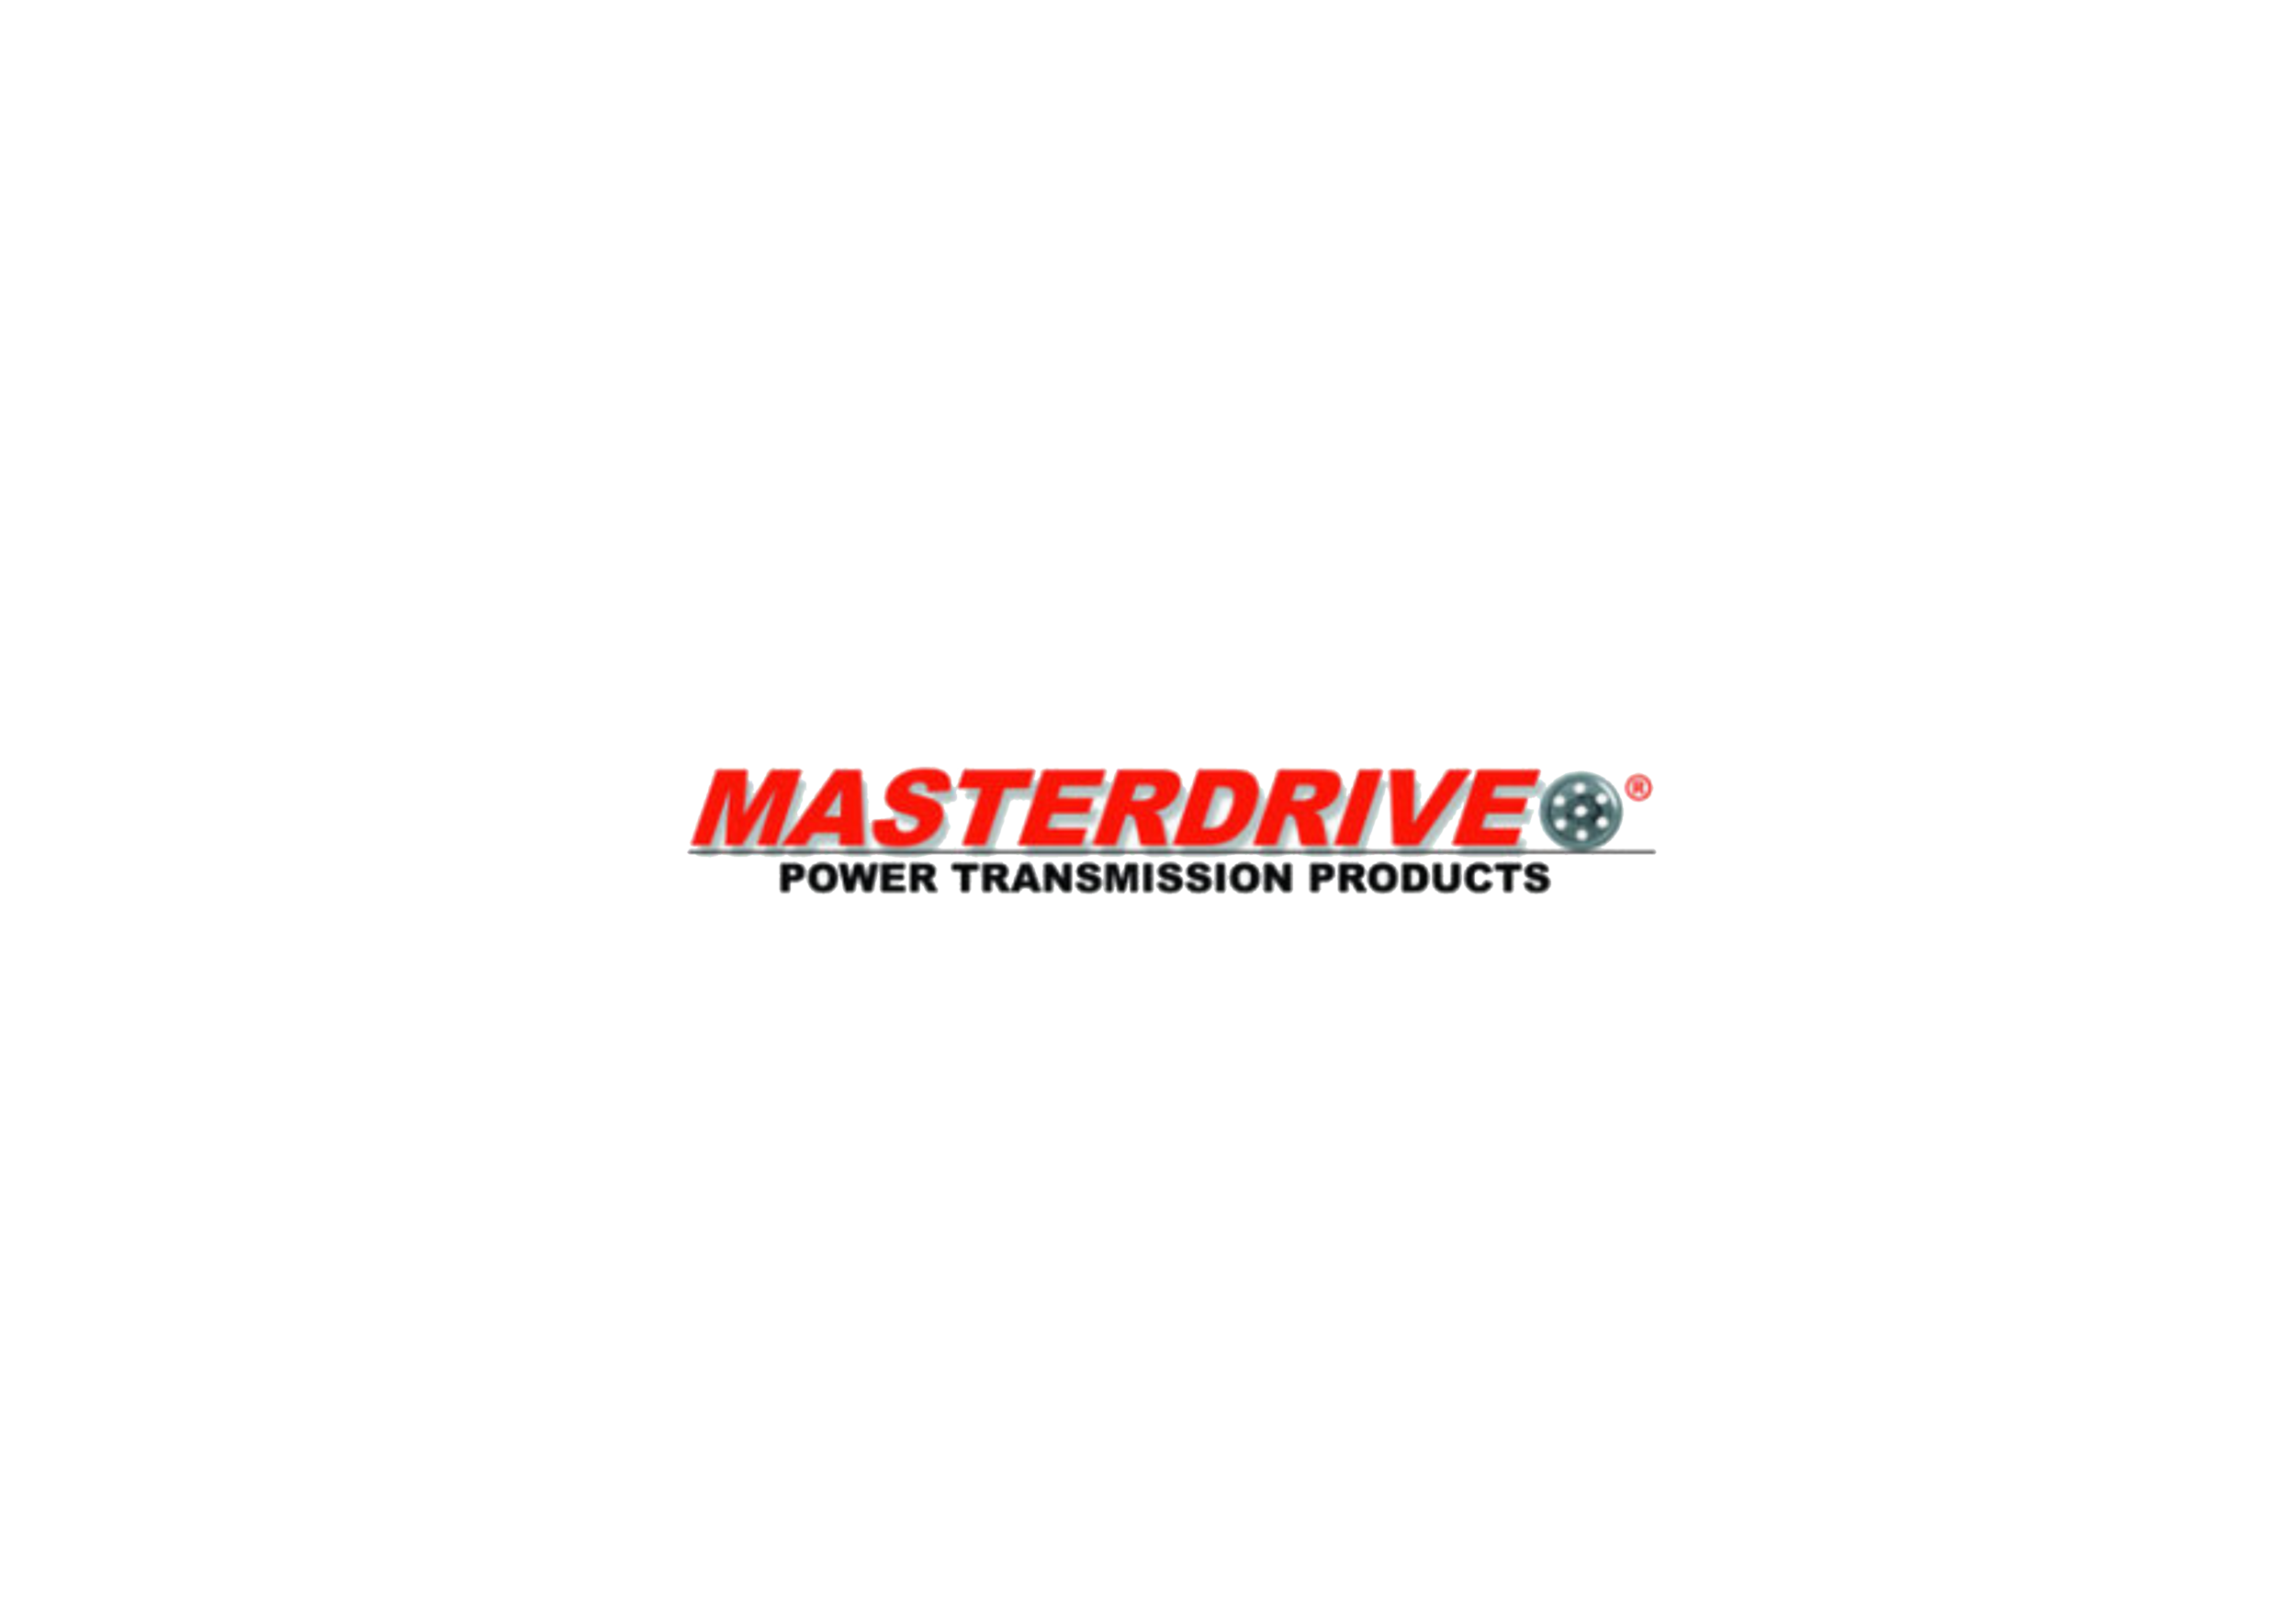 MasterDrive - Beginning in 1998, MasterDrive has grown to be a company with 12 regional warehouses, 7000 products in inventory and serves nearly 3000 customers. they pride themselves in exceeding expectations in product knowledge, customer service, and customer care.Sheaves/Bushings: complete line of single and multi-groove sheaves, variable pitch, bored to size, QD, taper bushed, DST, and more.Reasons to choose MasterDrive: